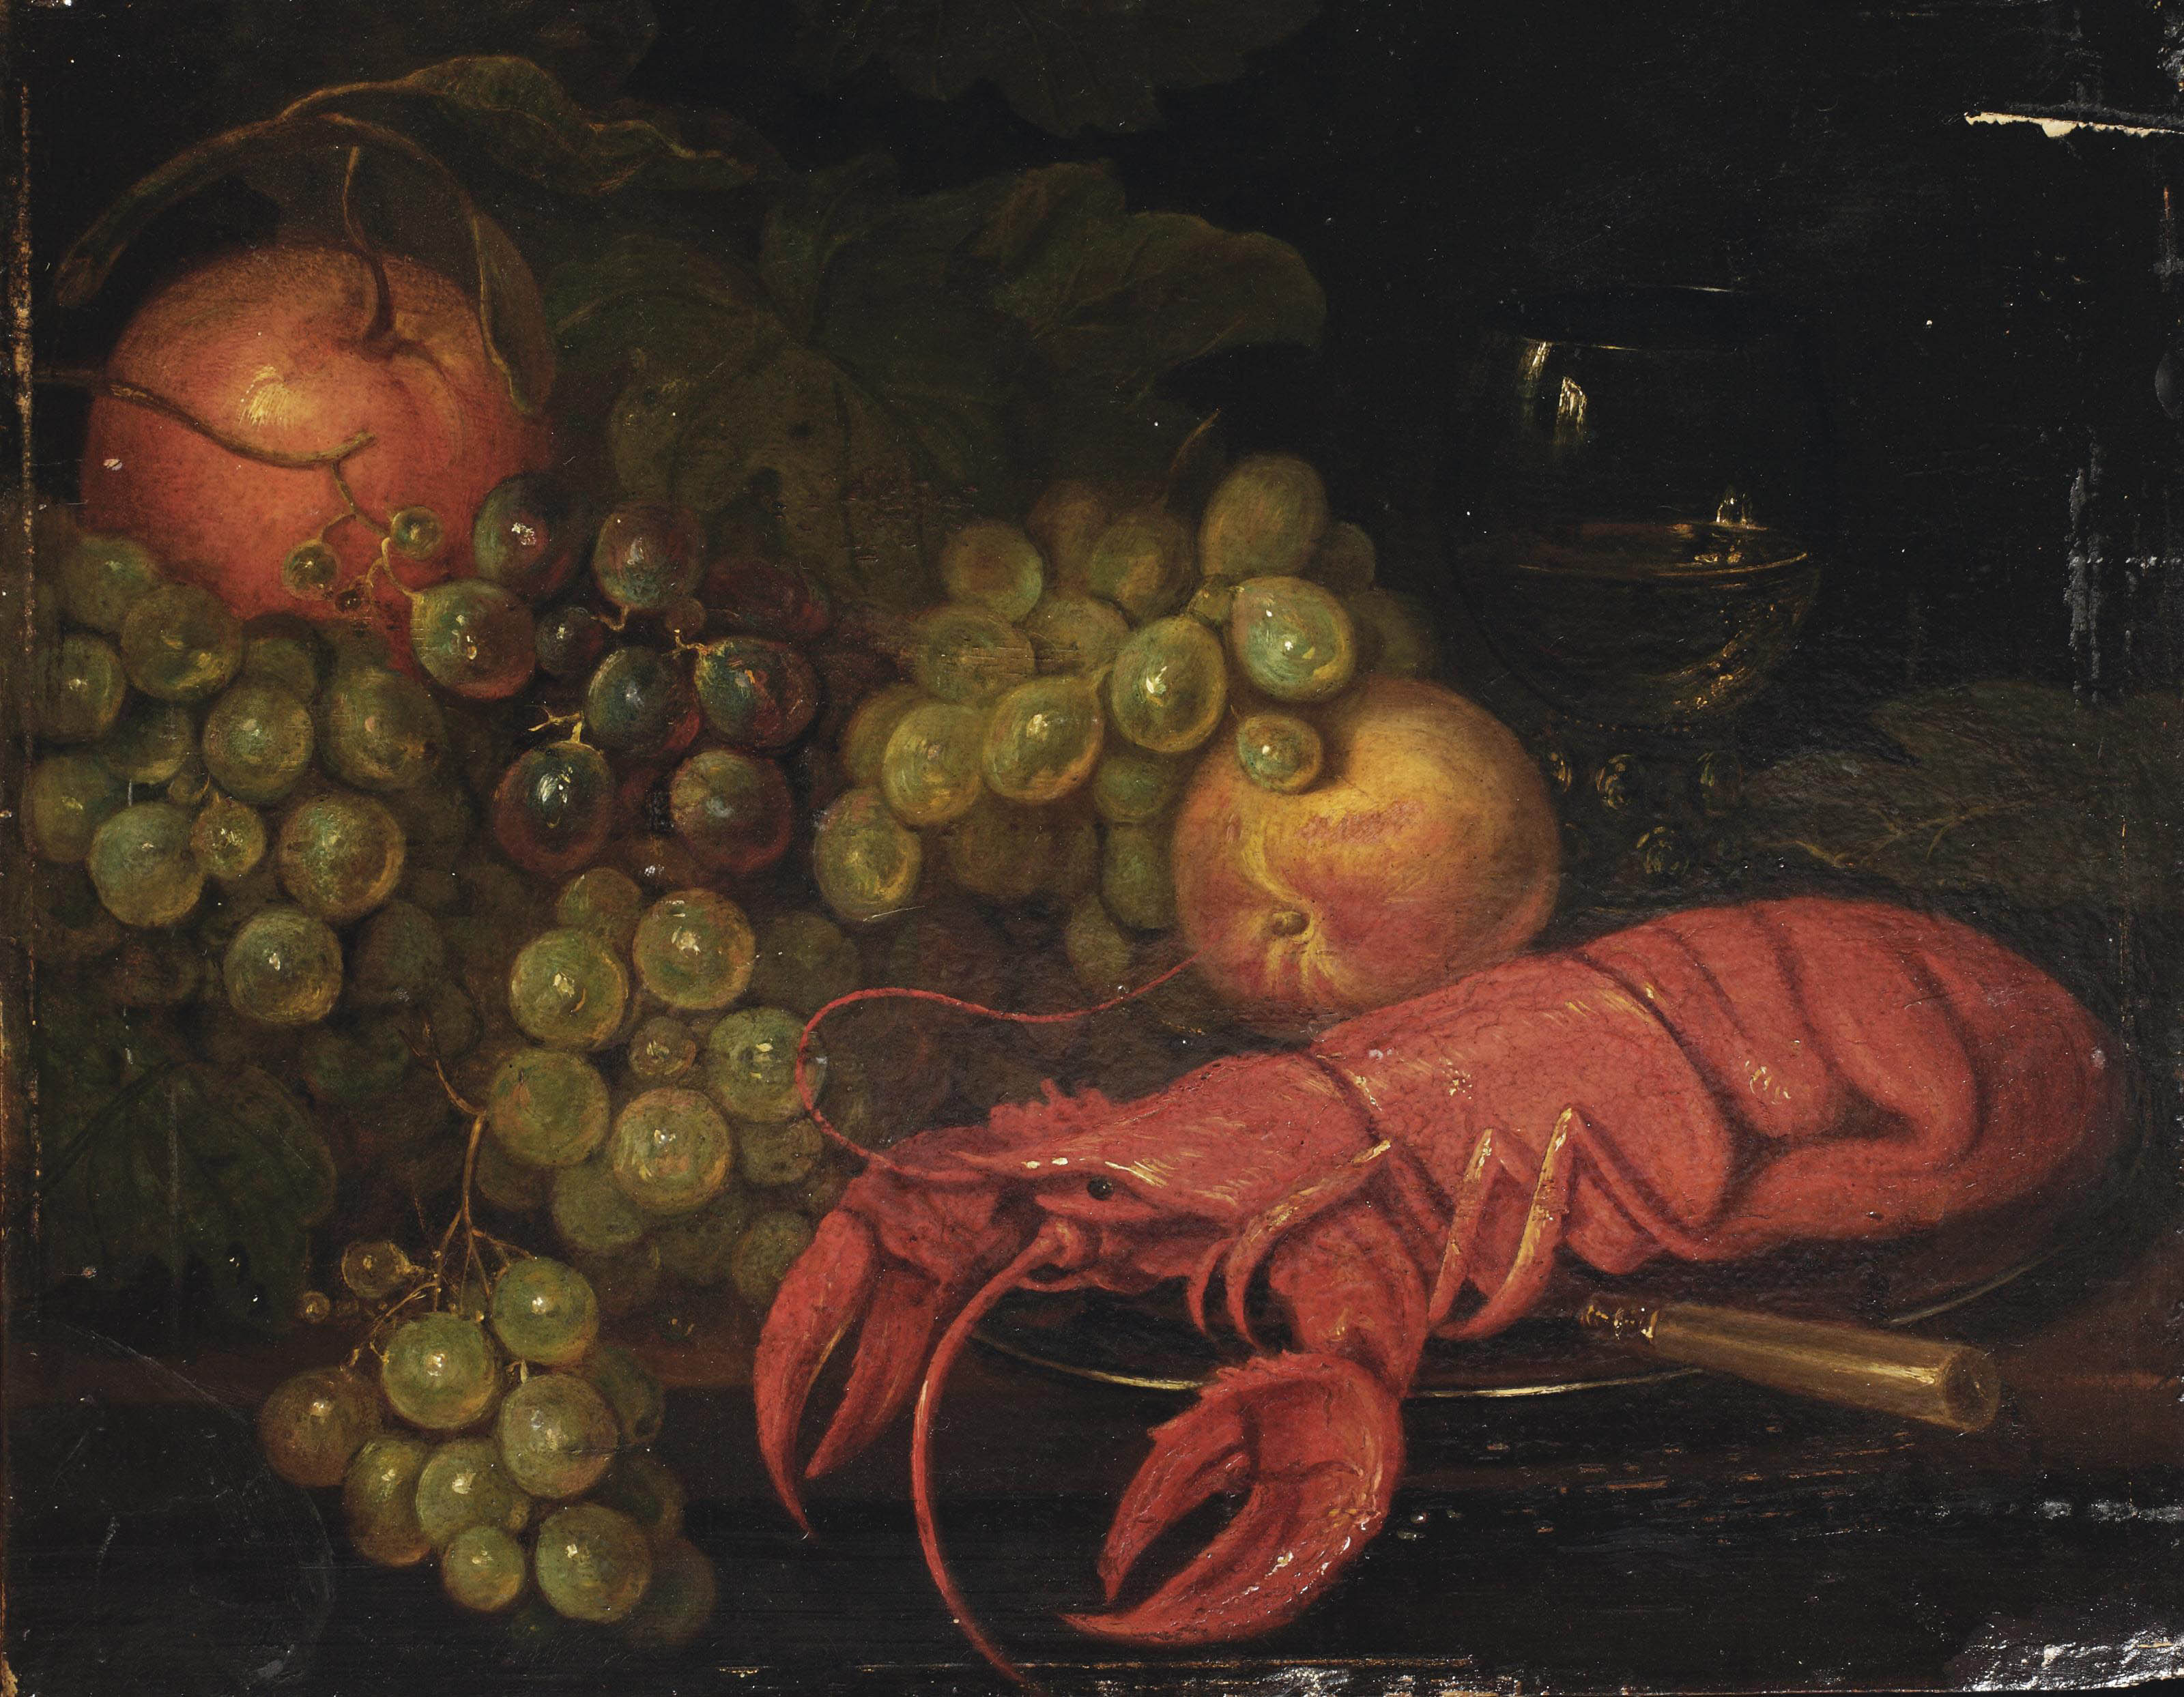 A lobster on a pewter dish, a knife, an apple, a peach, grapes and a roemer, all on a table